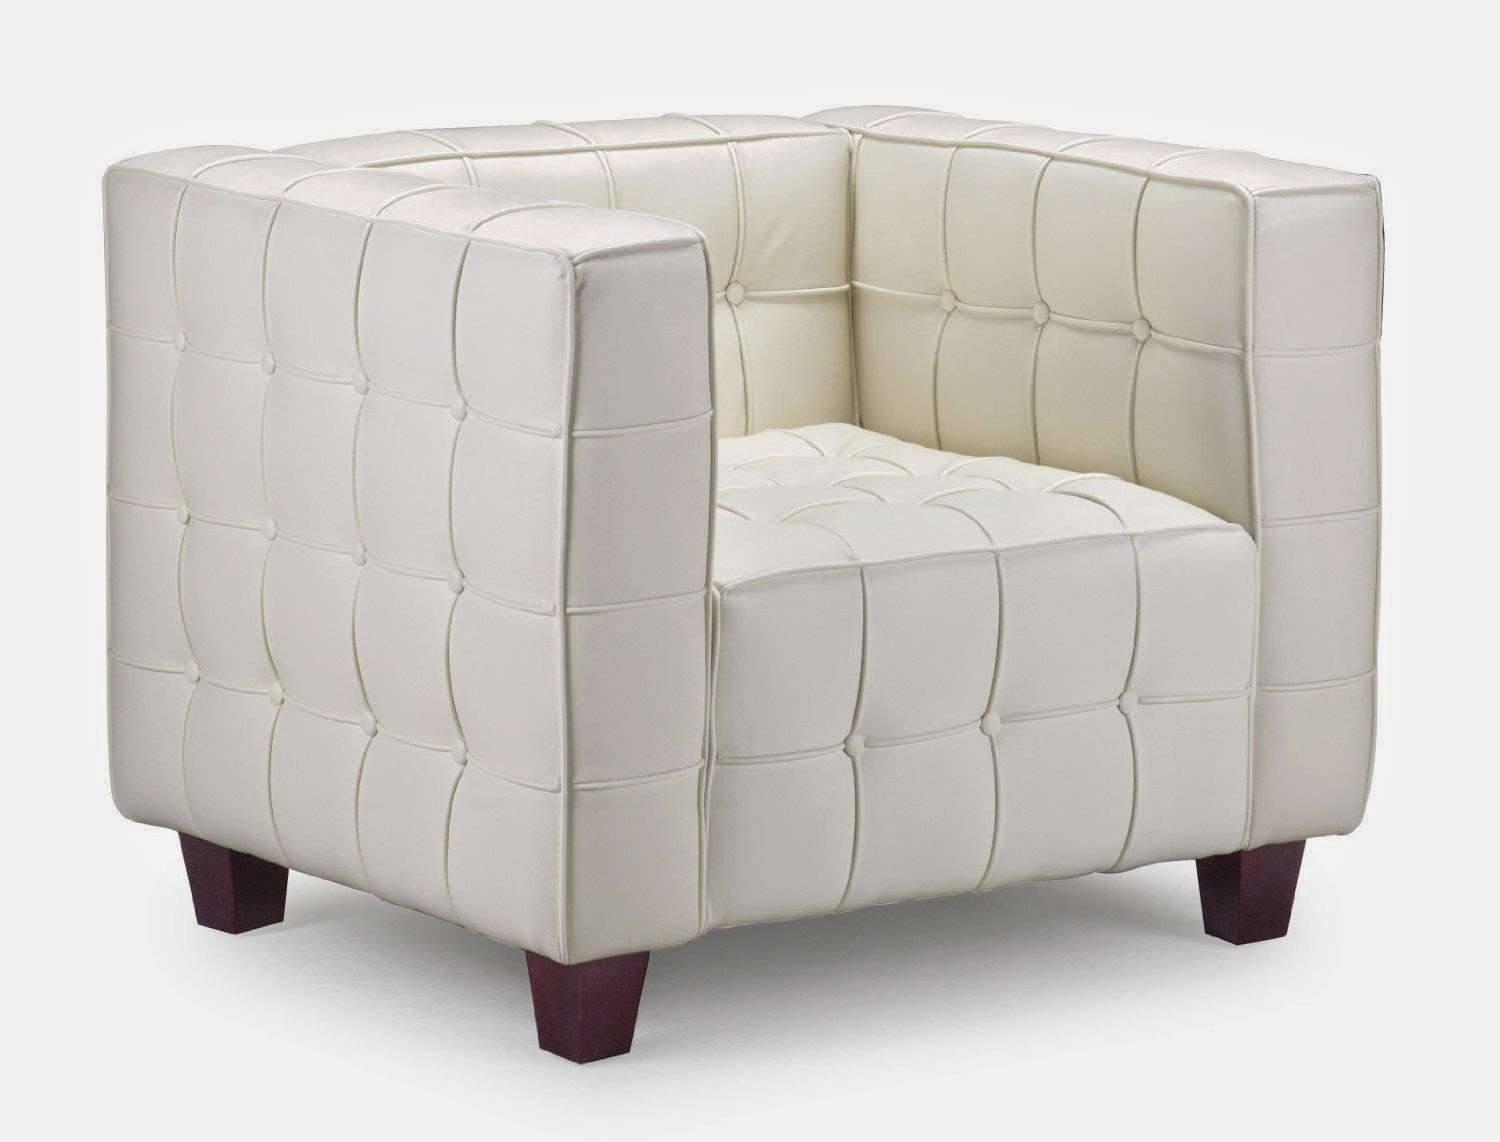 Living Room Small White Couch chesterfield couch white london tufted leather